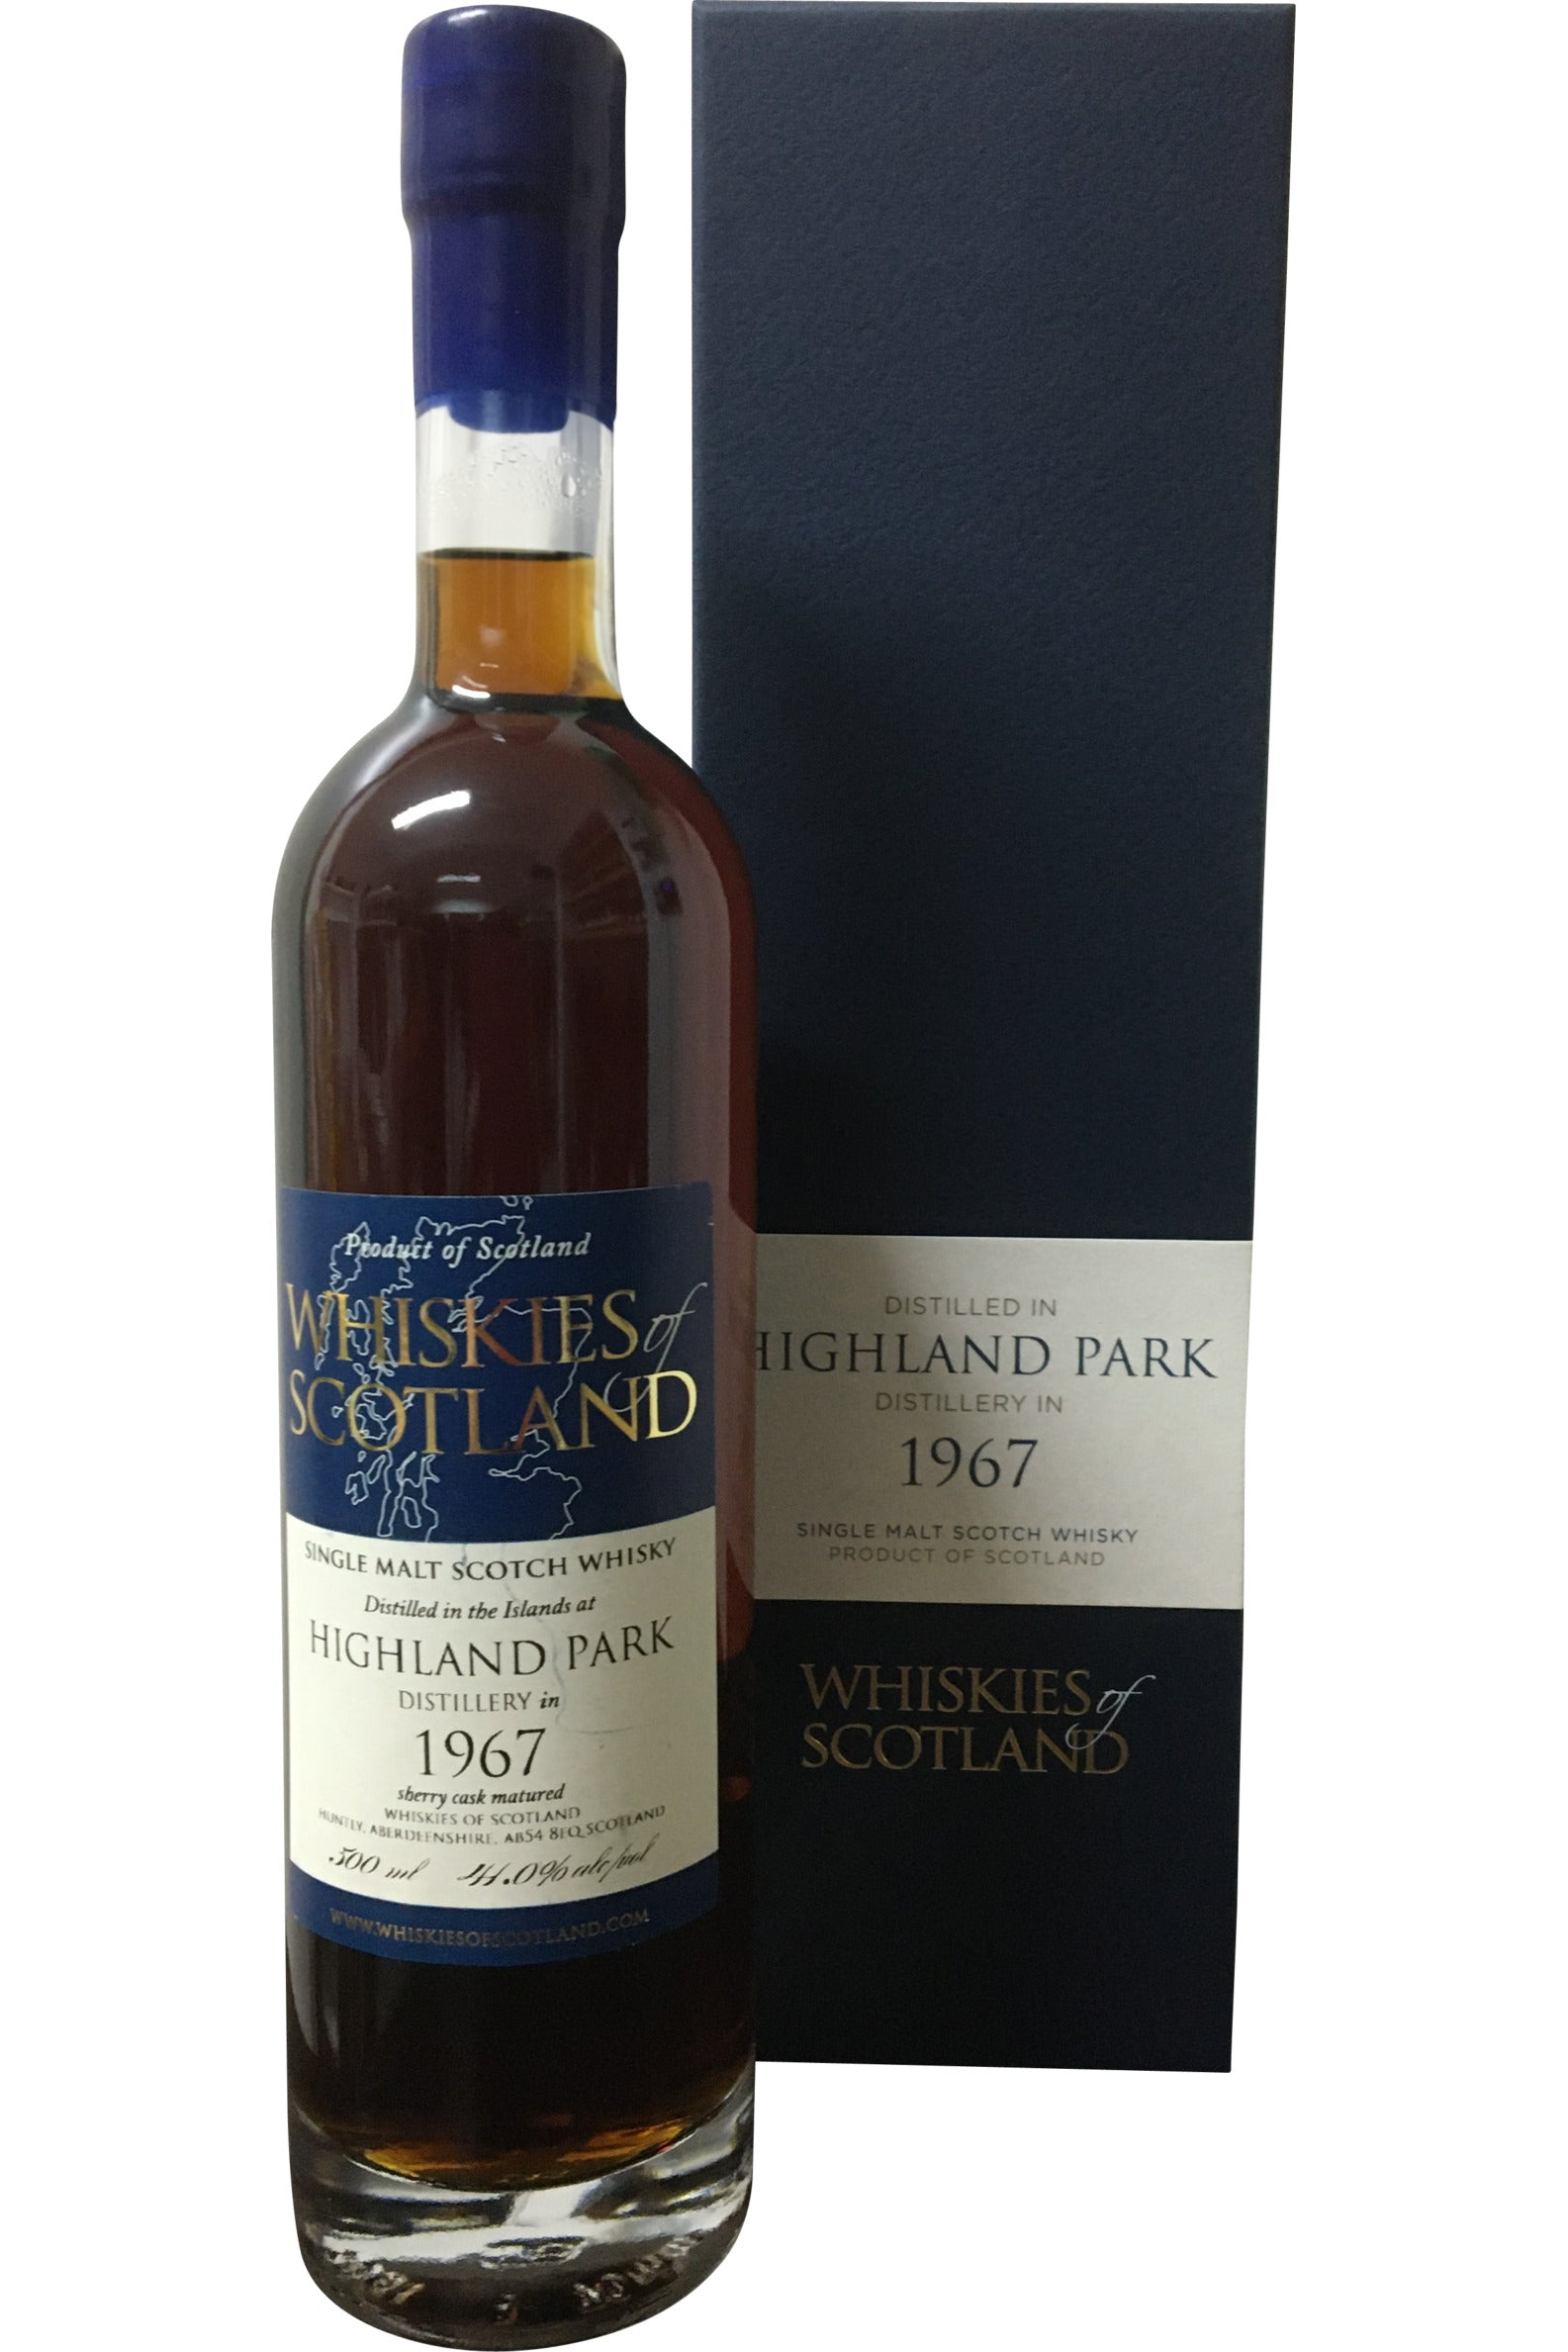 Whiskies of Scotland Highland Park 1967 - 41.0% 500ml - Award Winning